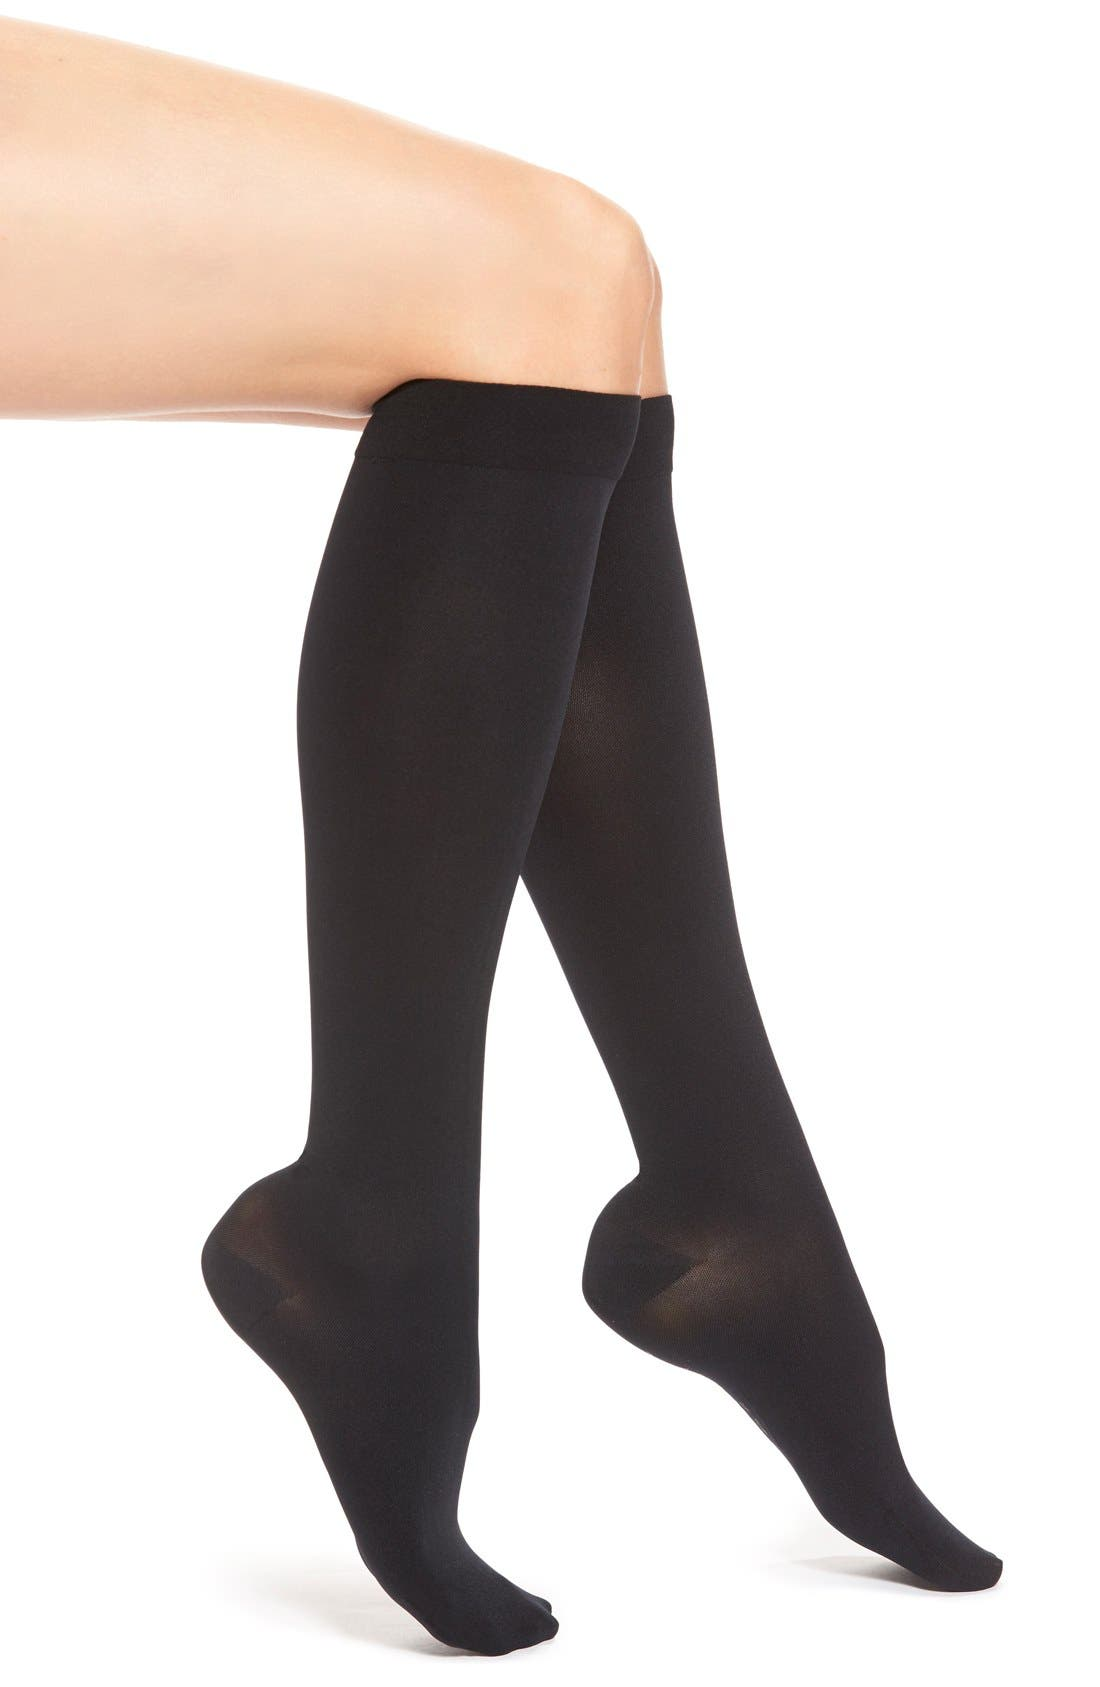 Opaque Compression Knee High Socks,                             Main thumbnail 1, color,                             BLACK